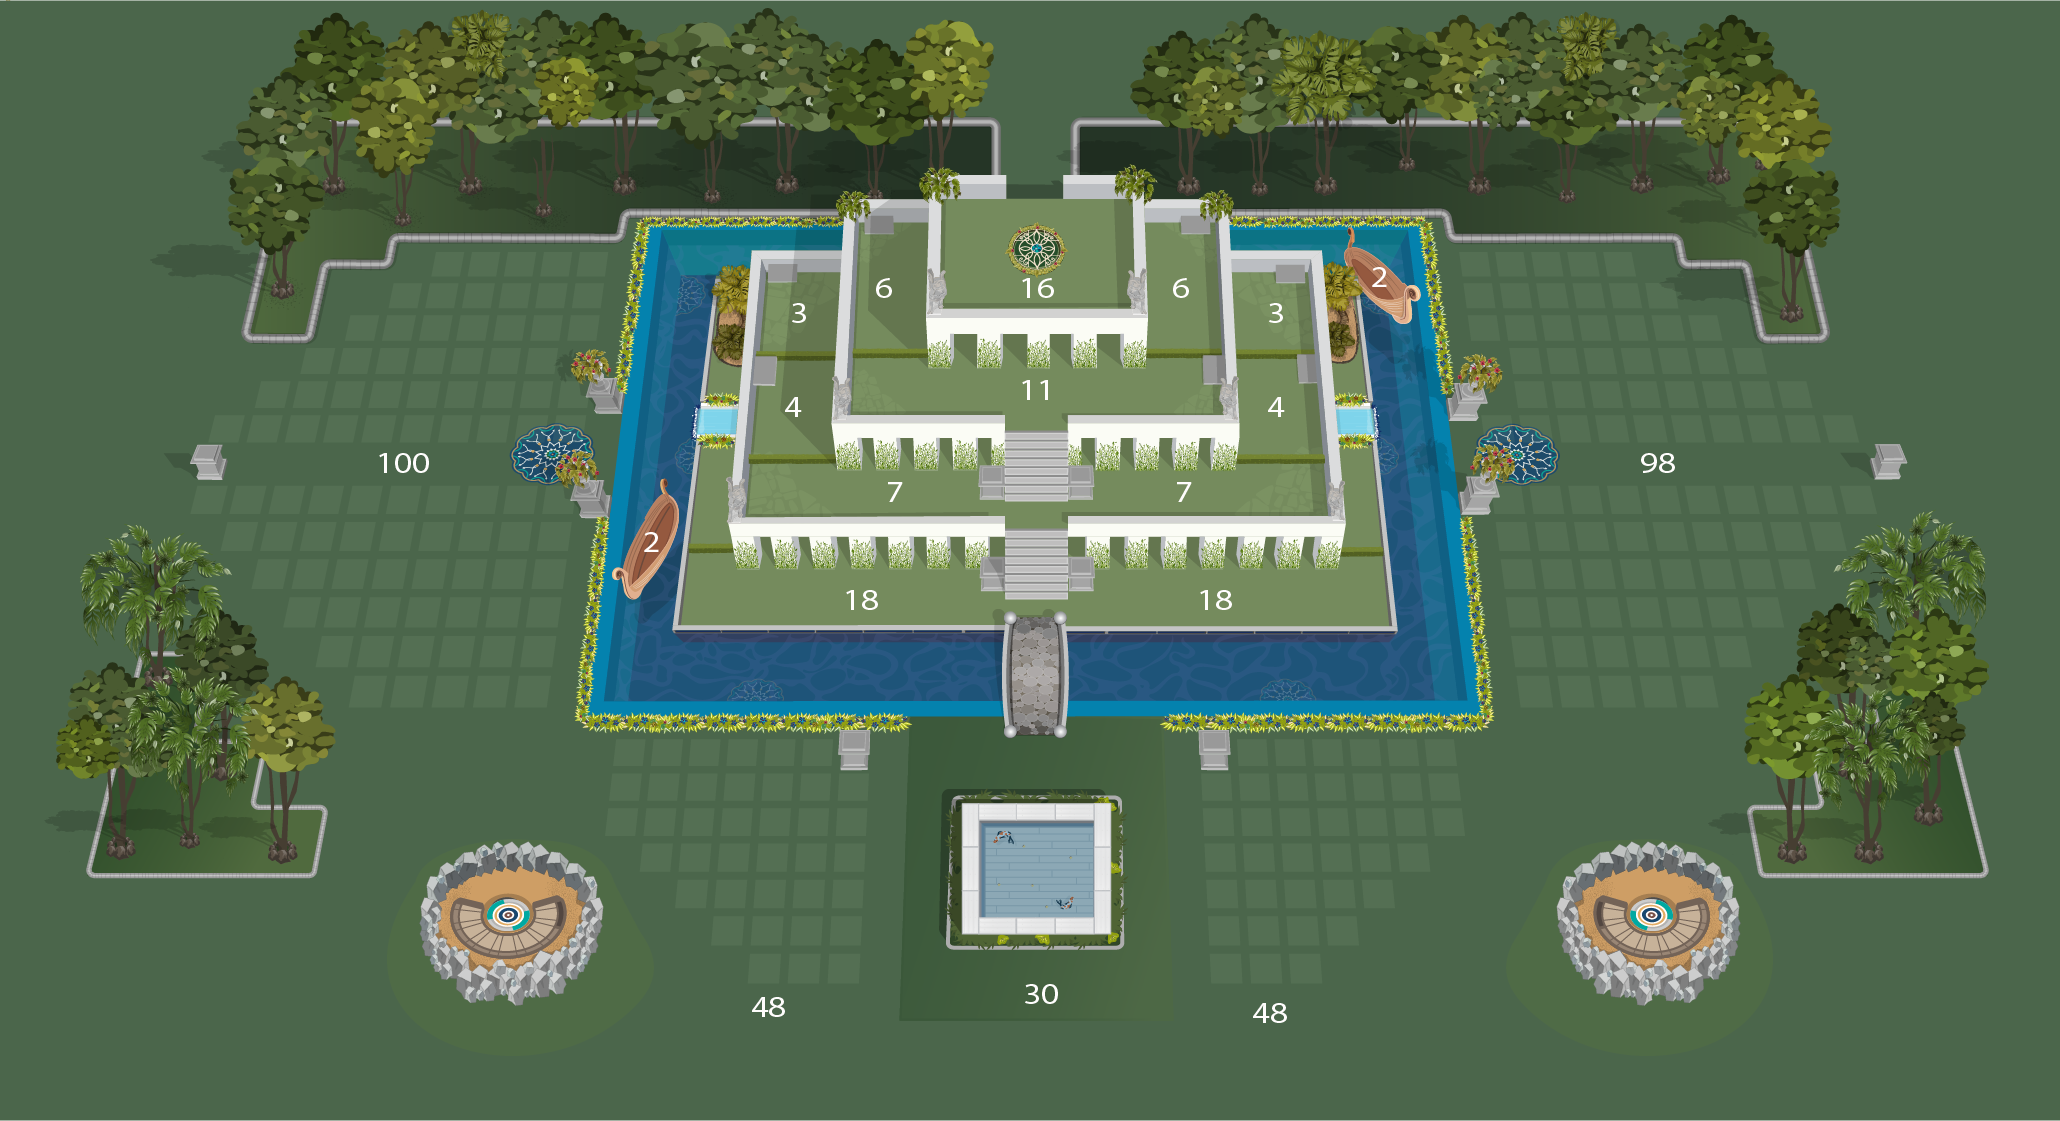 Gardens_of_Babylon_-_Room_capacity.png